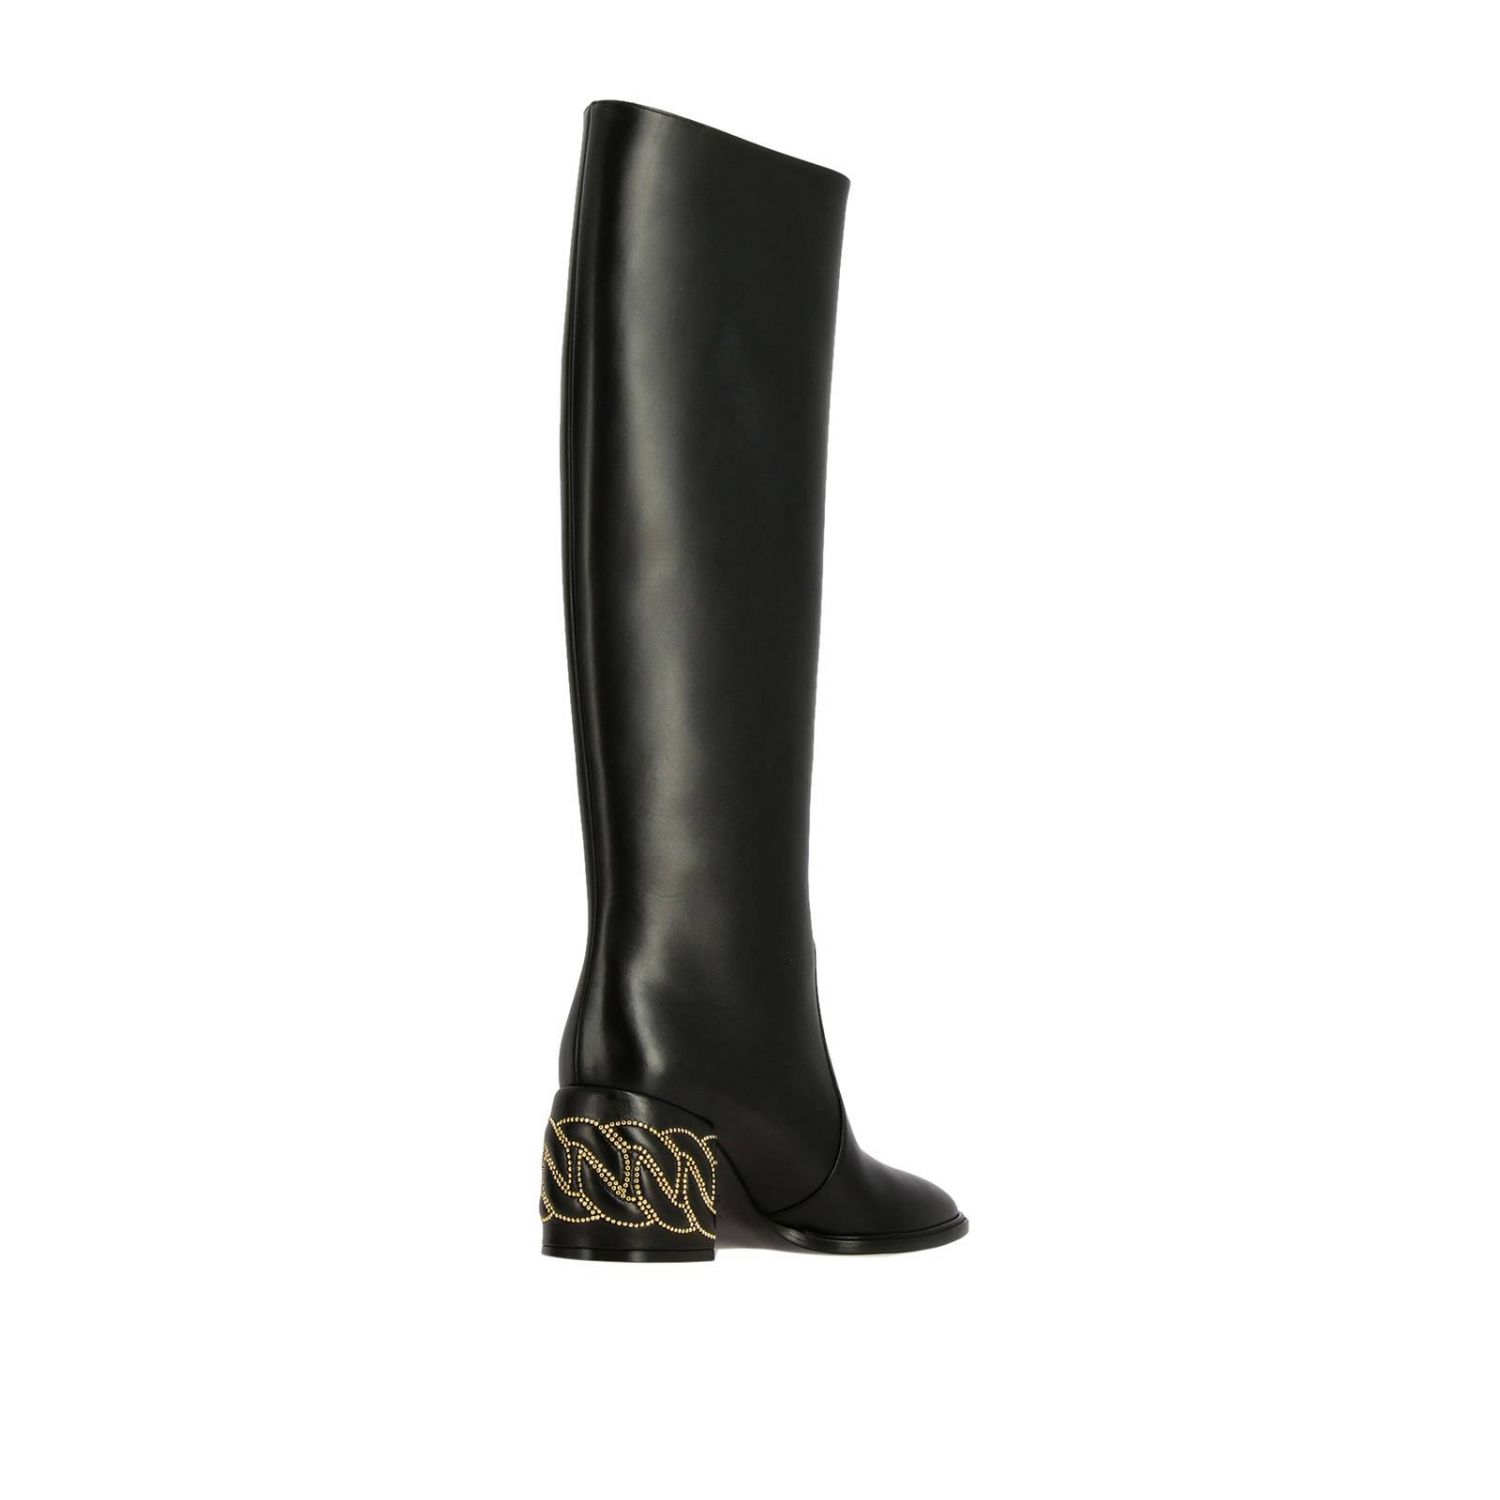 Boots women Casadei black 4